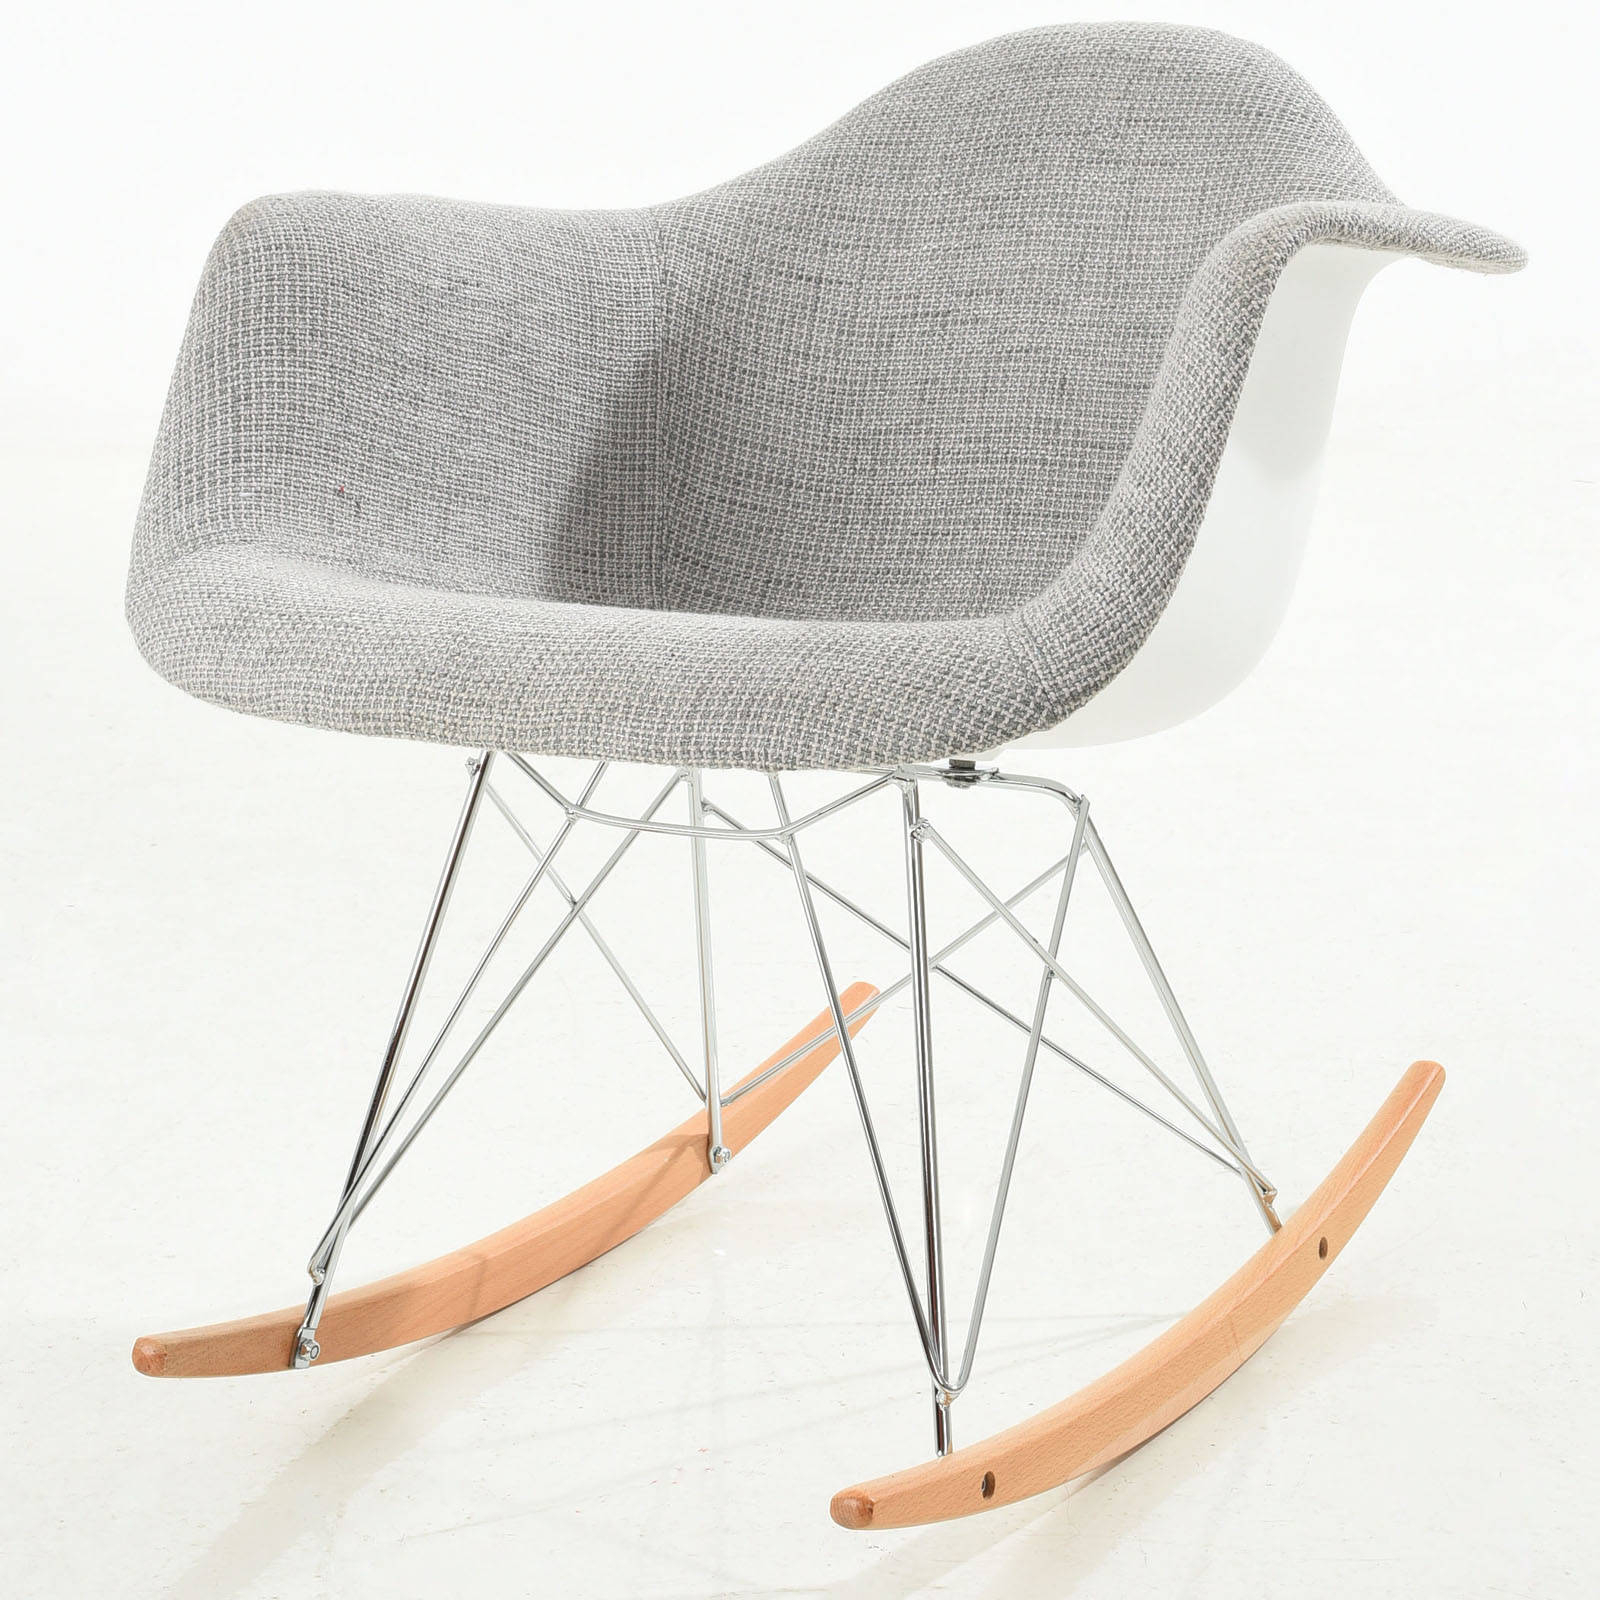 Edgemod Furniture Padded Light Grey Rocker Chair Regarding Padded Rocking Chairs (#9 of 20)